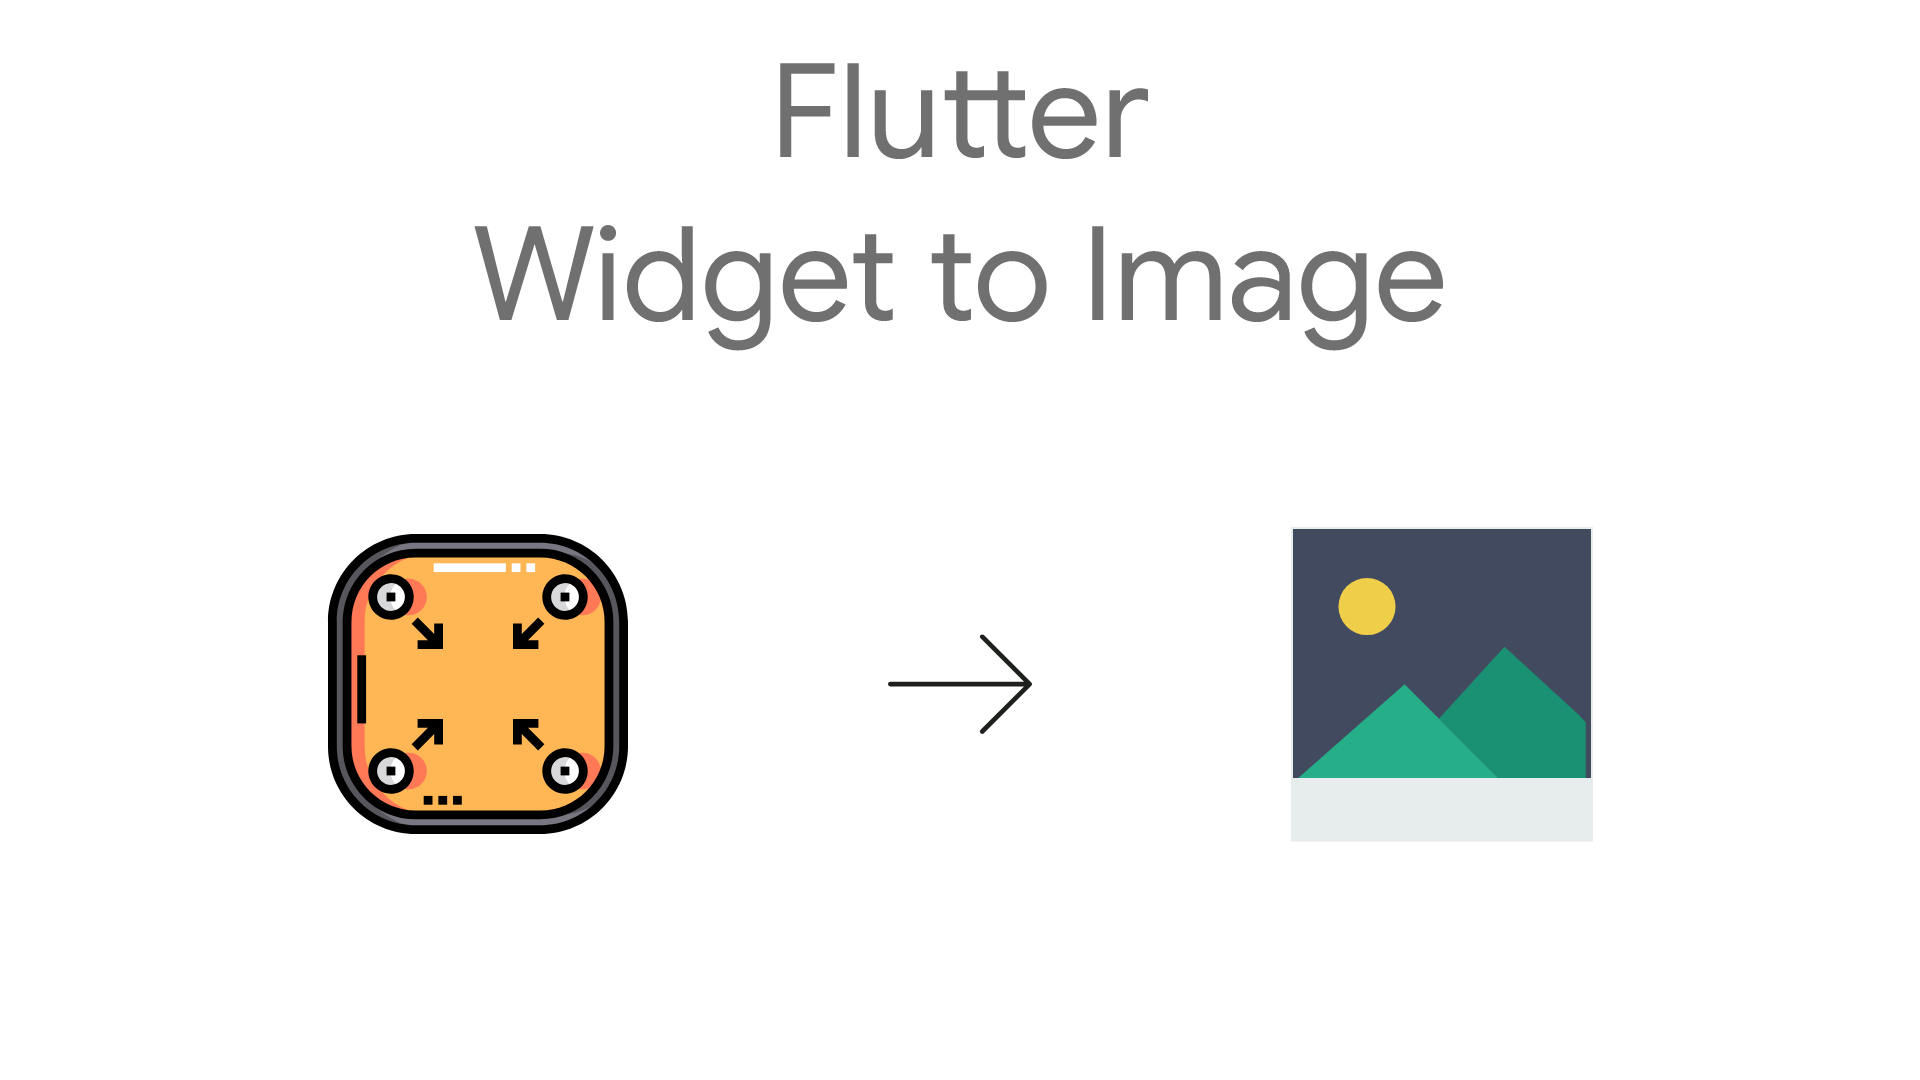 Export your widget to image with flutter - Flutter Community - Medium